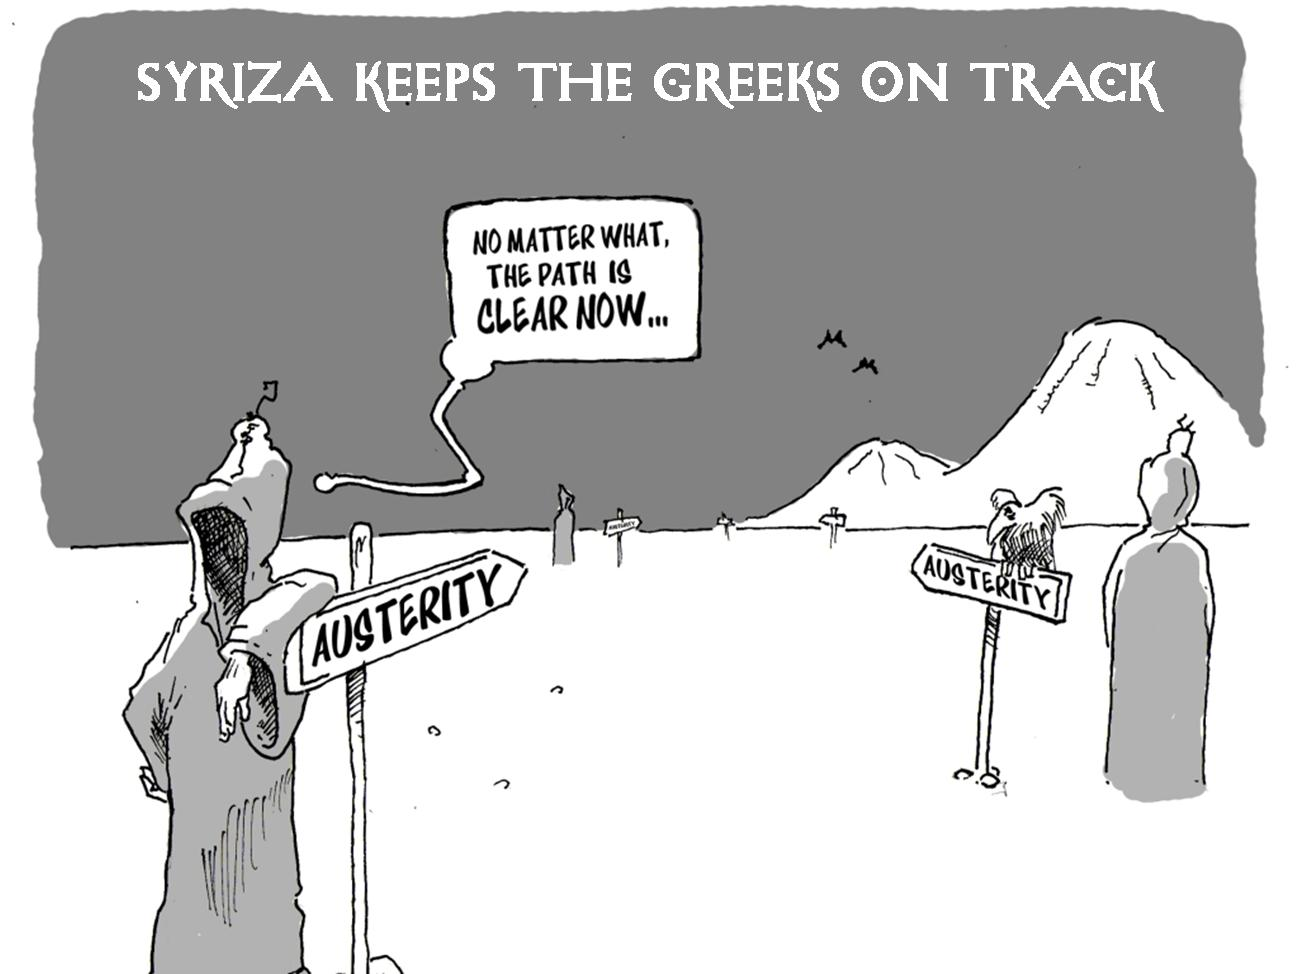 Syriza Keeps the Greeks on Track